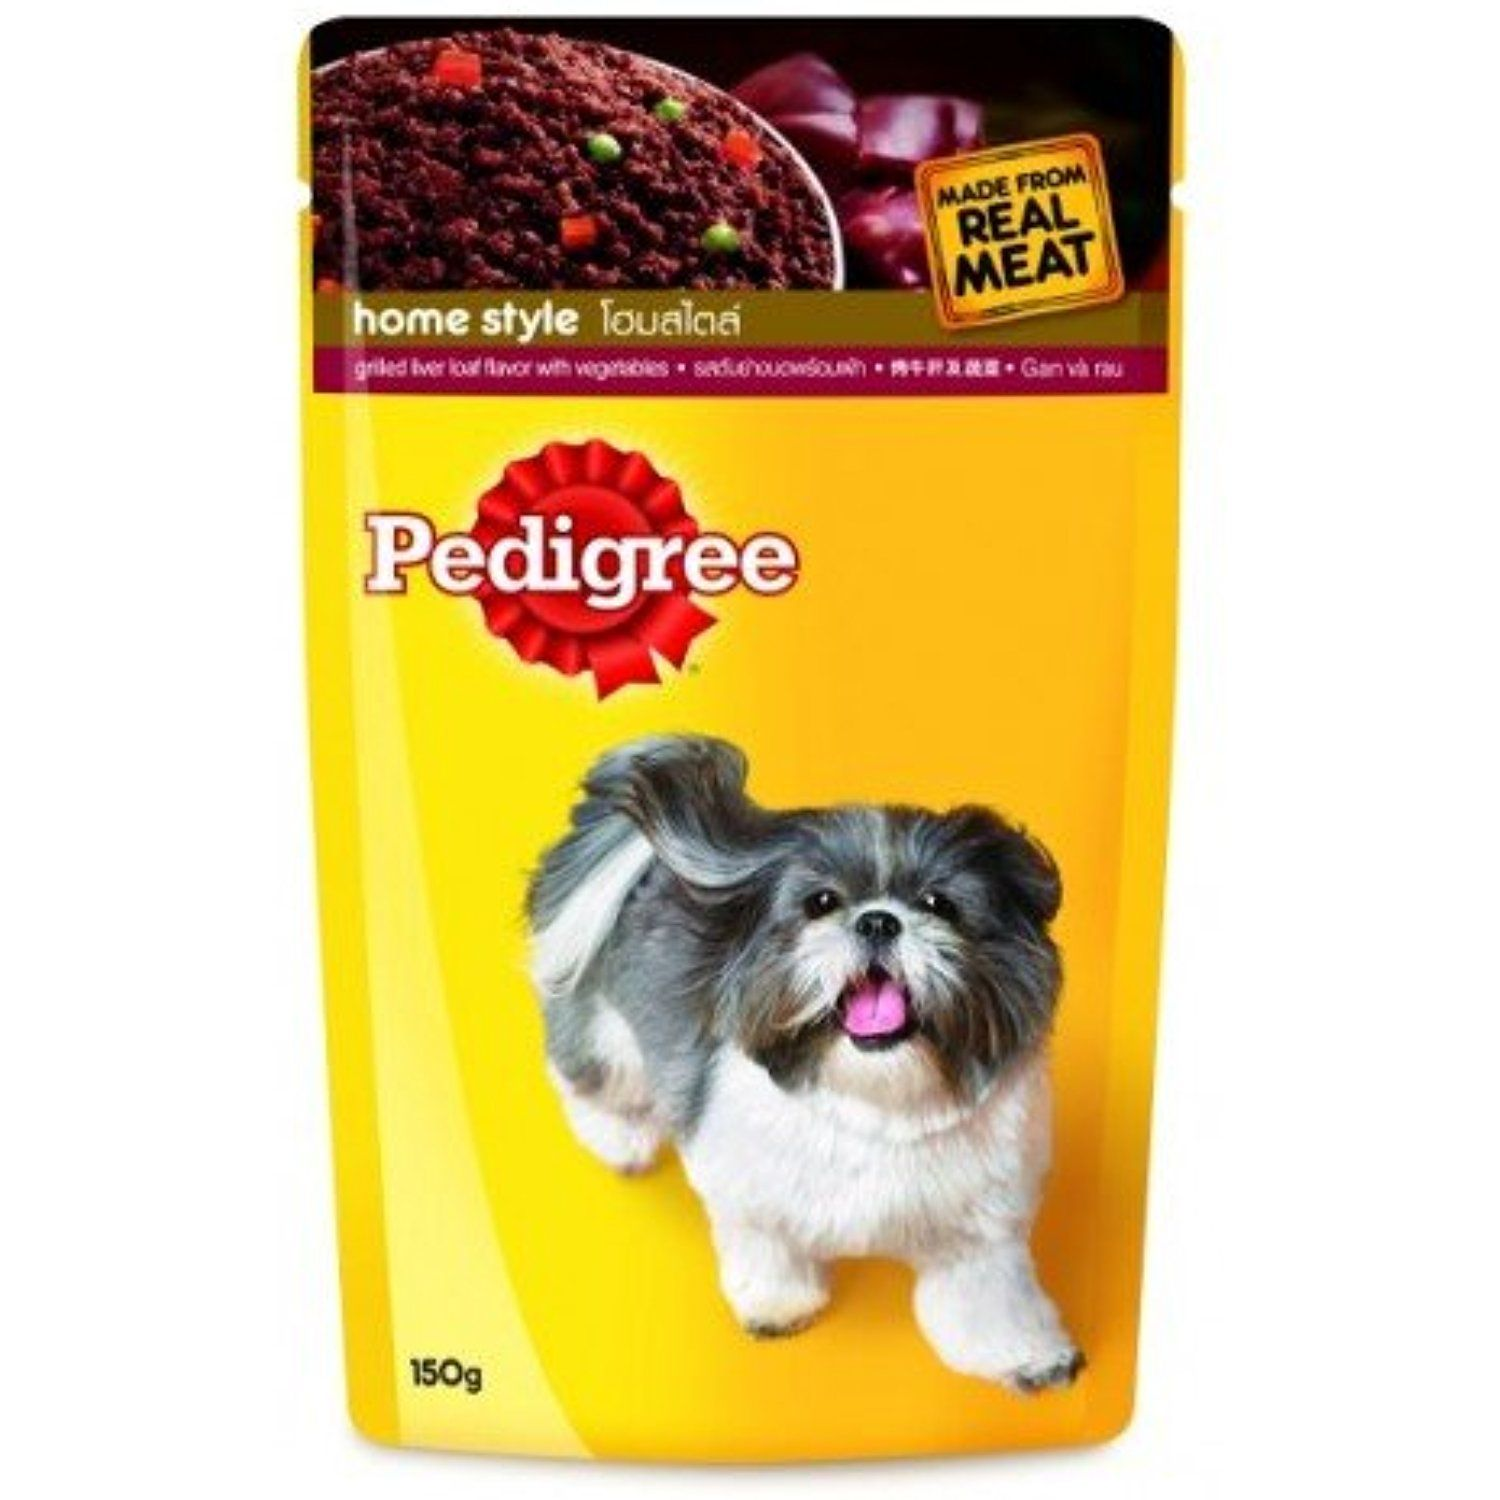 Pedigree Pouch Dog Food Liver And Vegetable Flavor Made Form Real